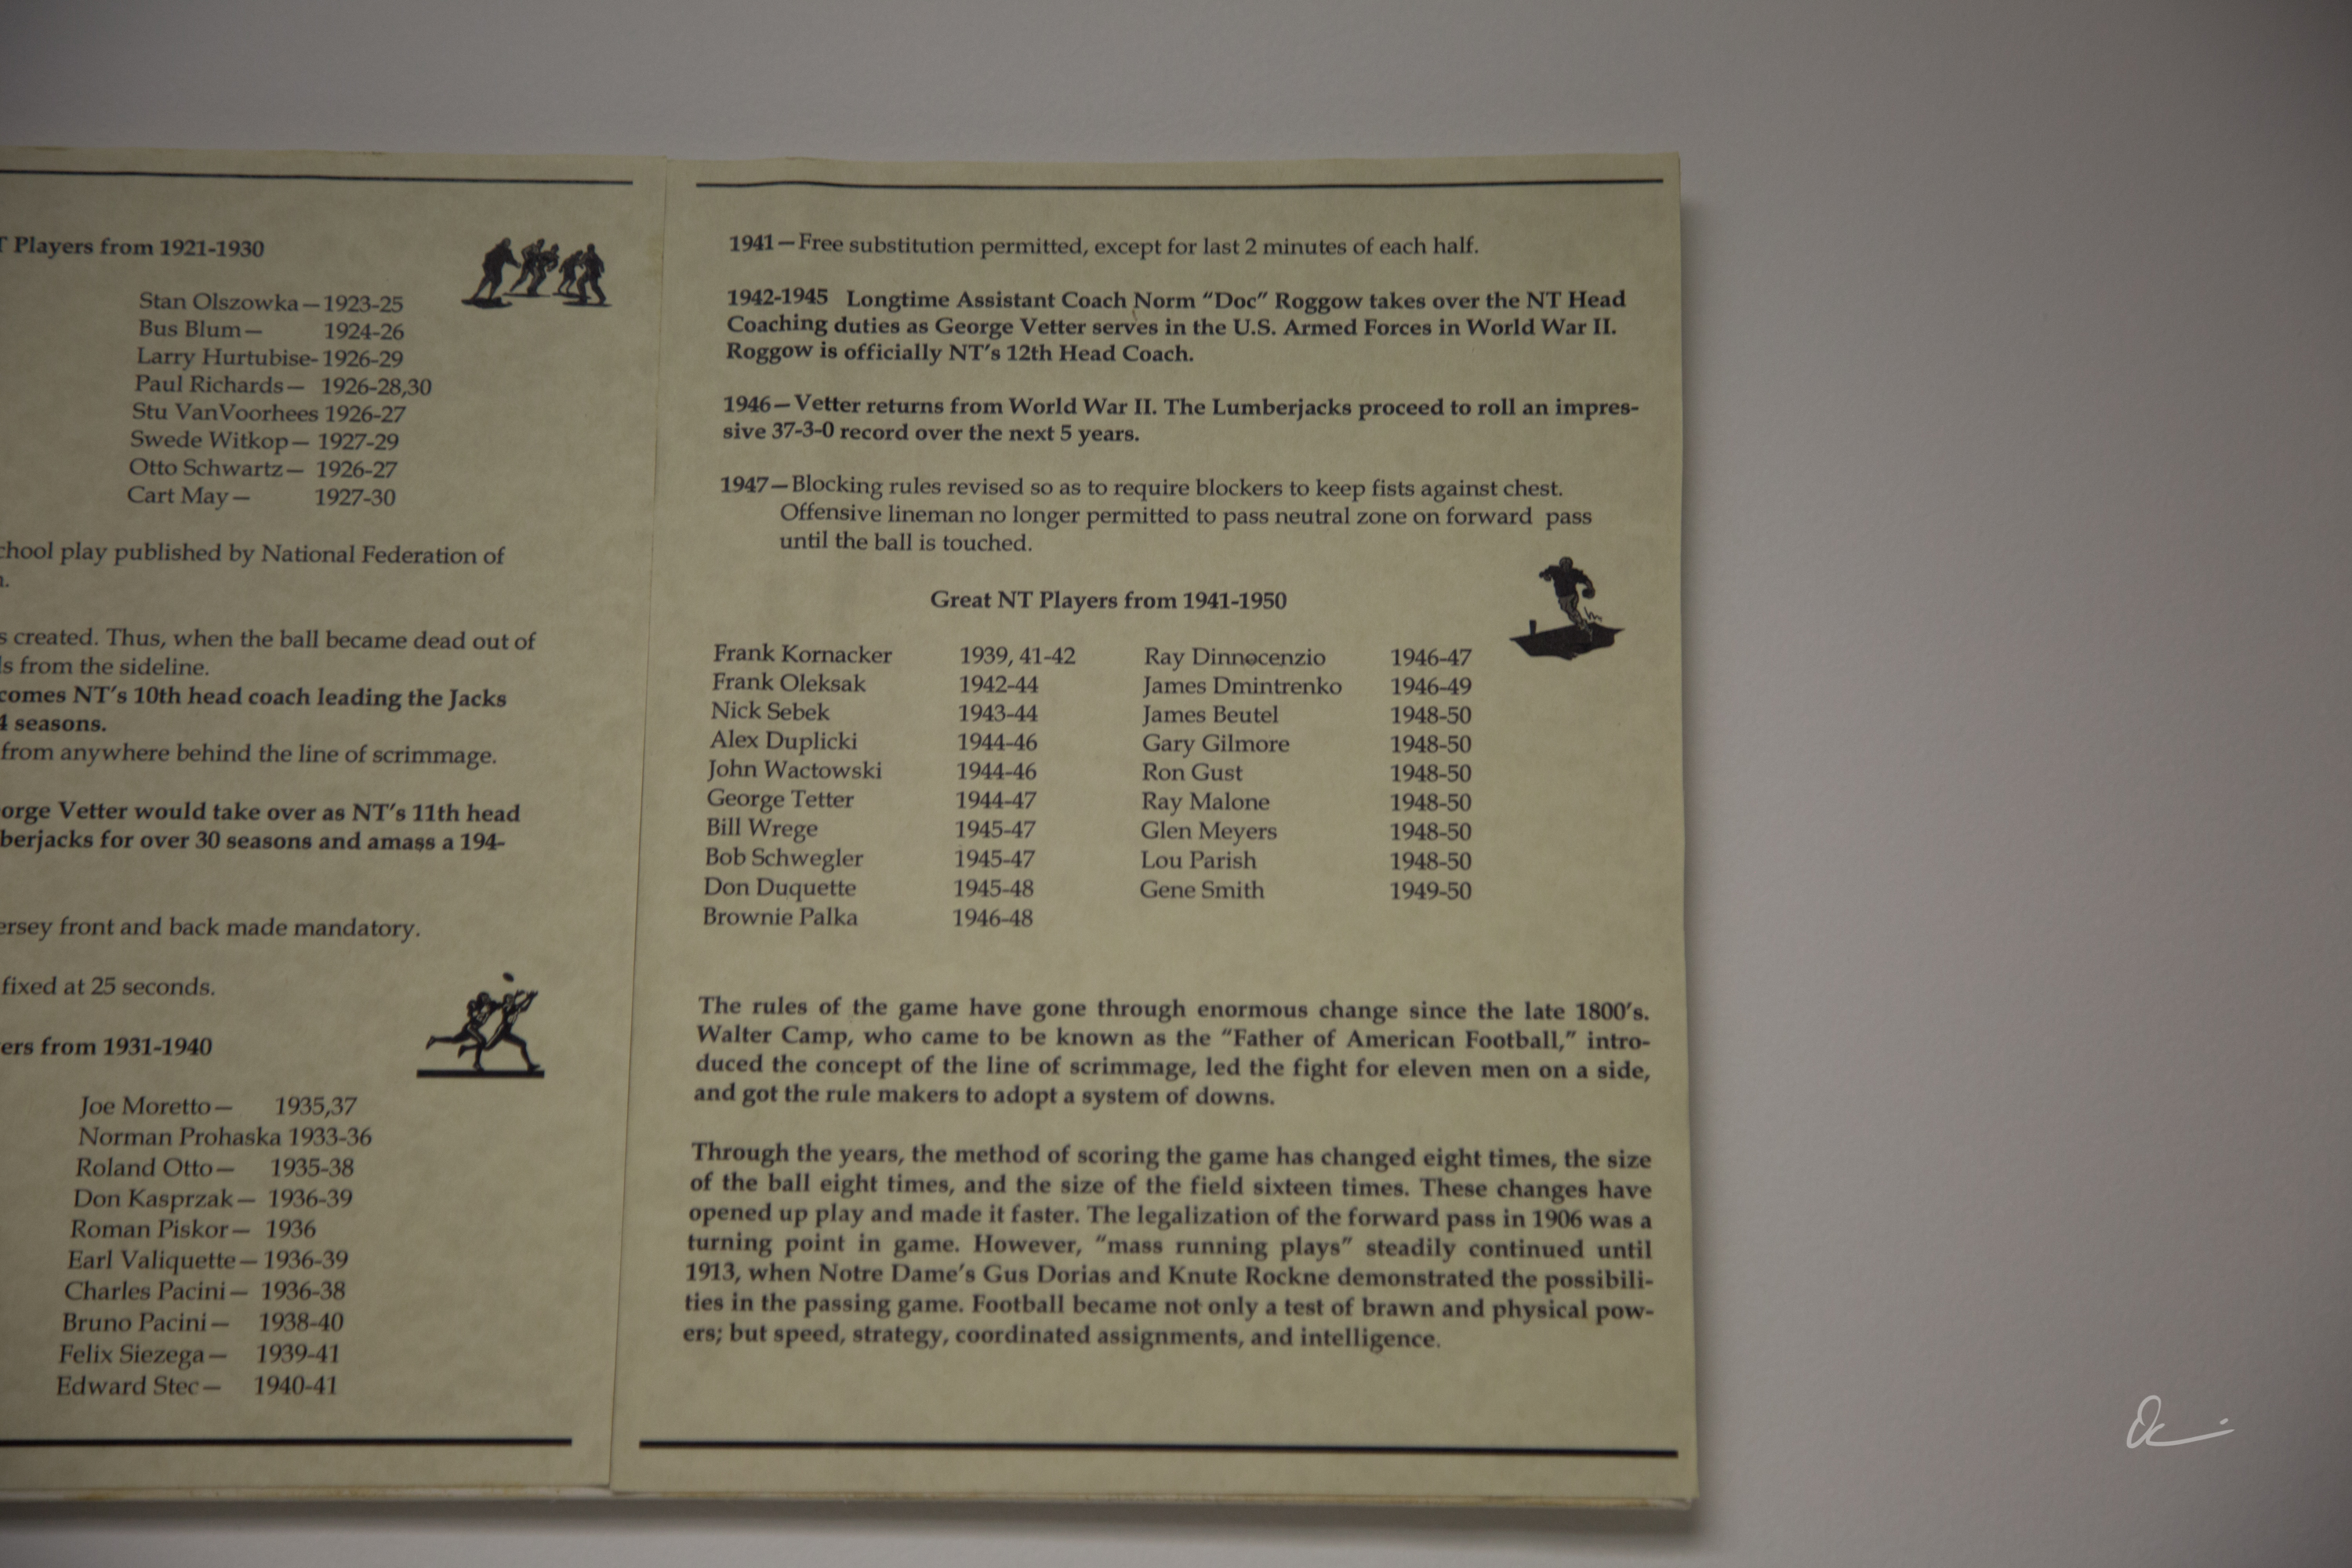 How Rule Changes Have Shaped the Game, display at the North Tonawanda Football Hall of Fame (2017) 4.jpg